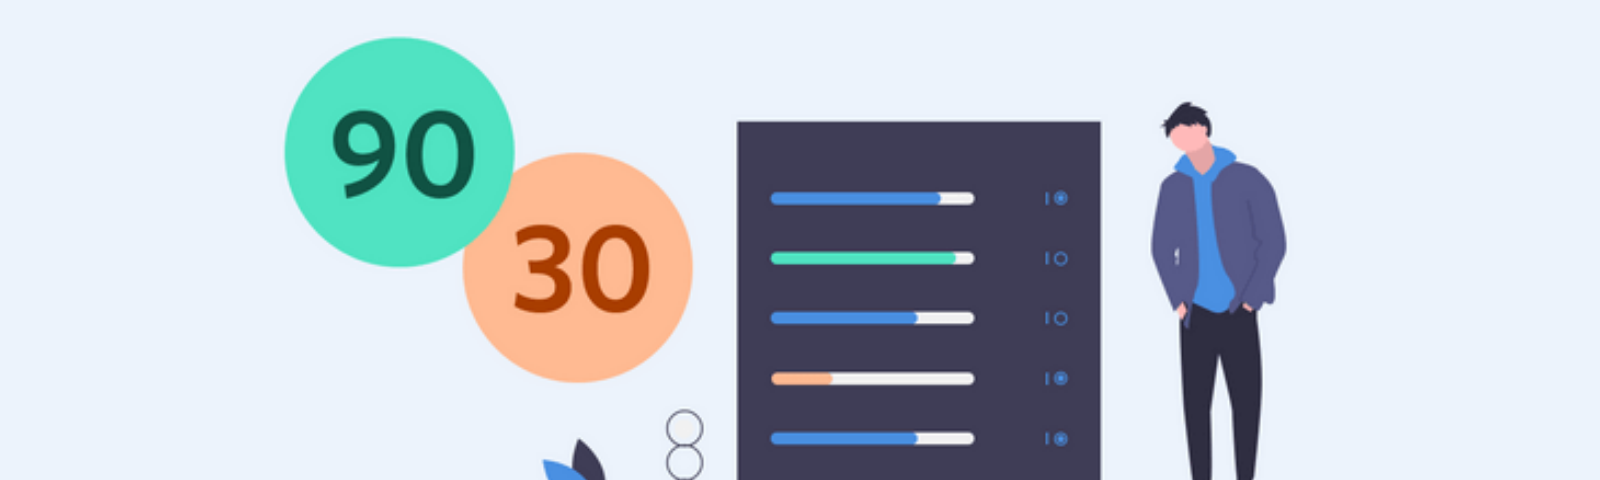 The 90/30 rule for user research insight scoring